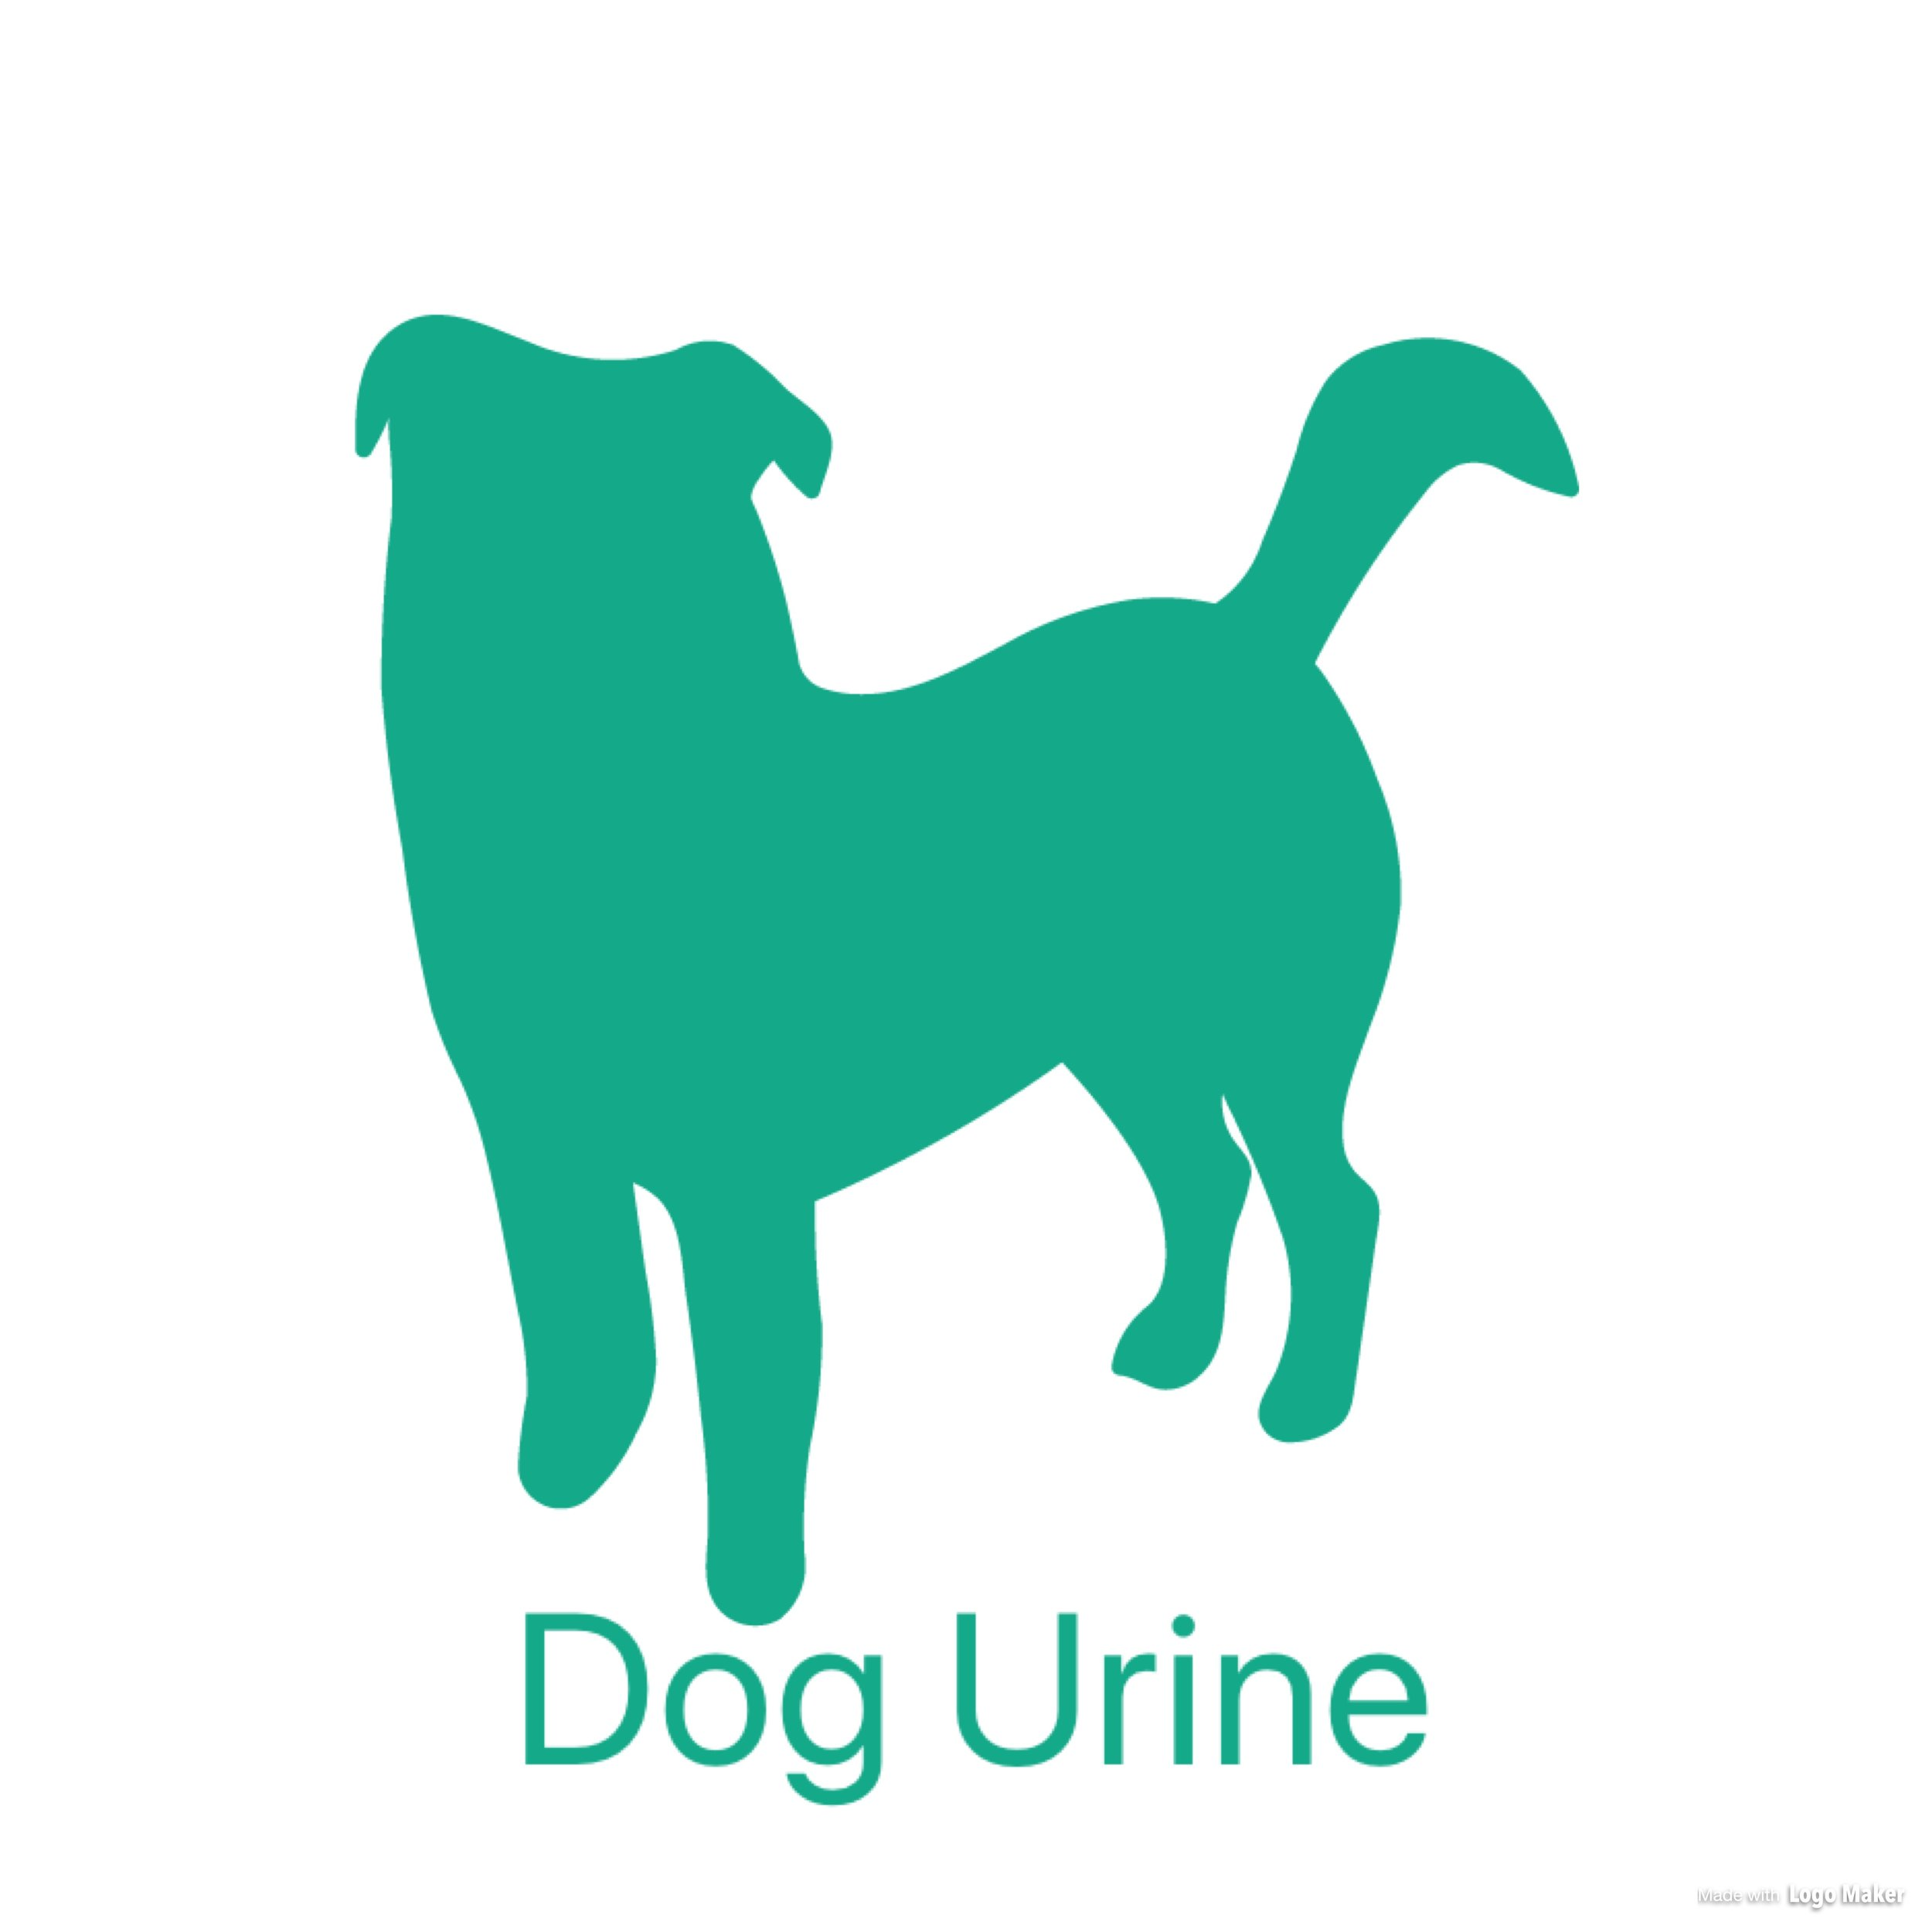 dor urine graphic.jpeg